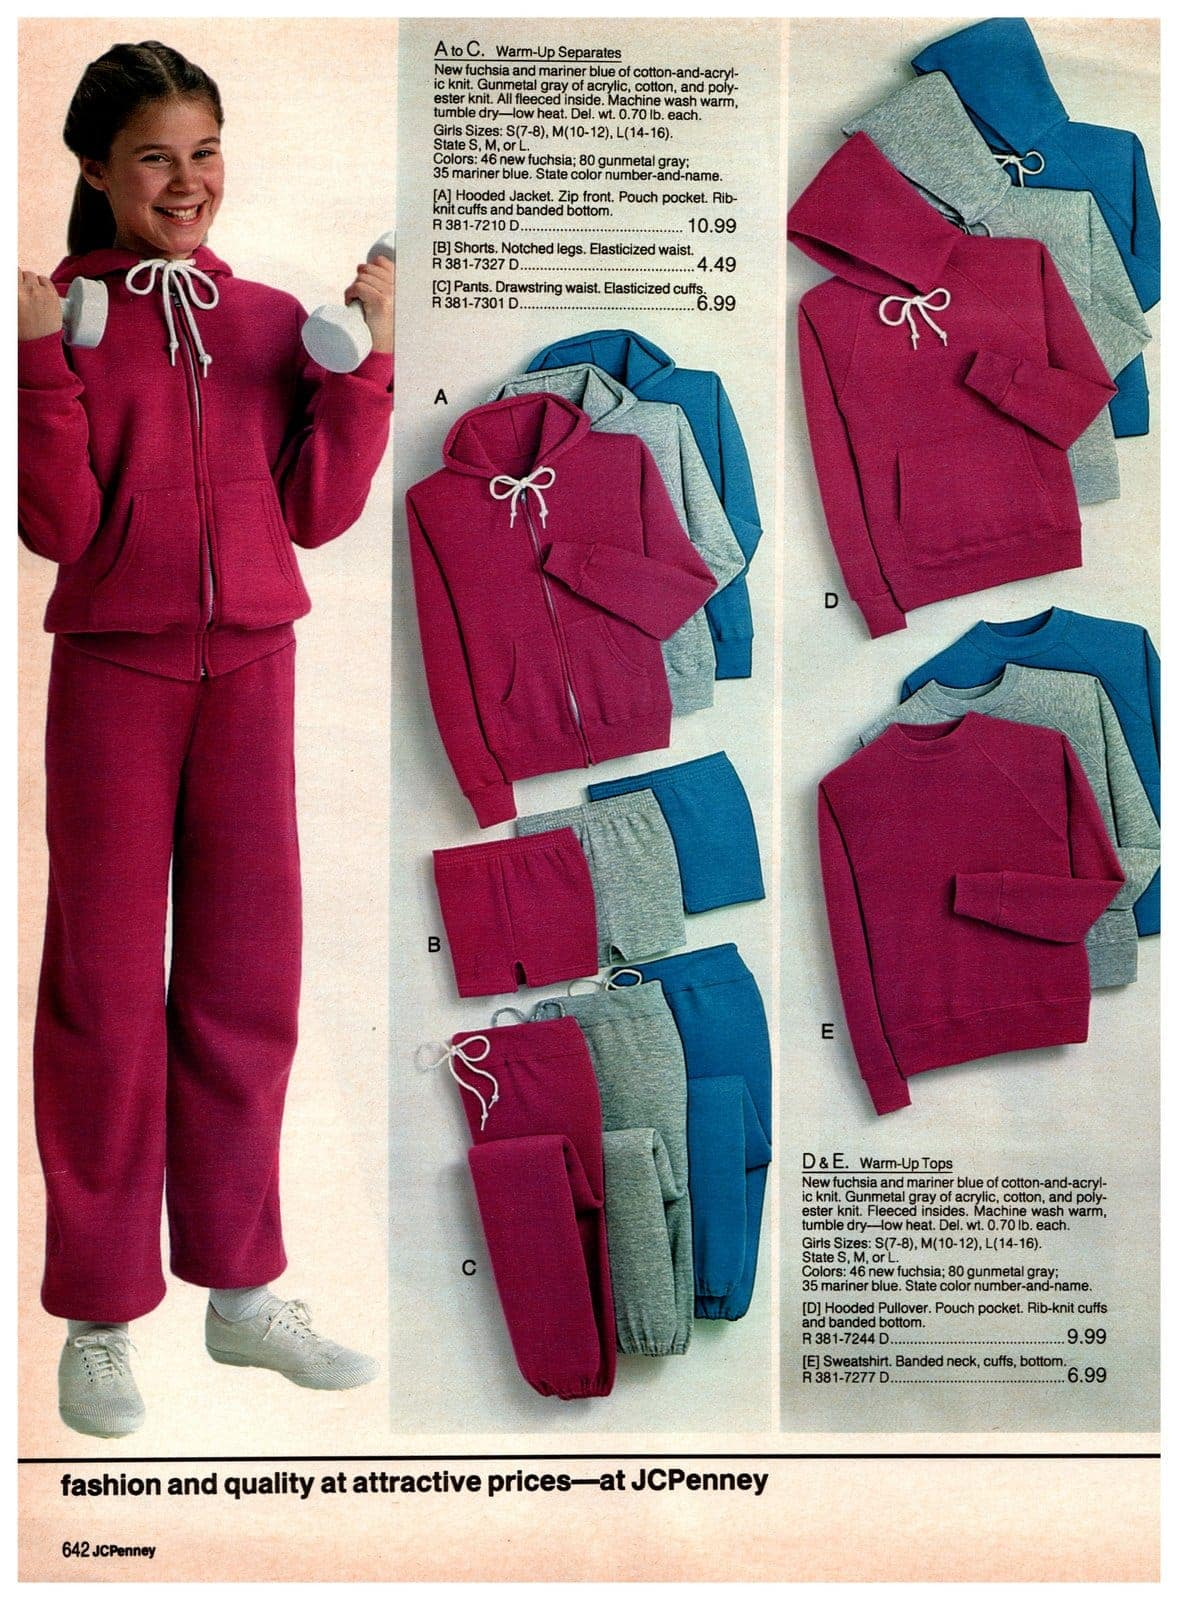 Warm-up separates - jogging pants and sweatshirts for girls, in bright pink, bright blue and grey